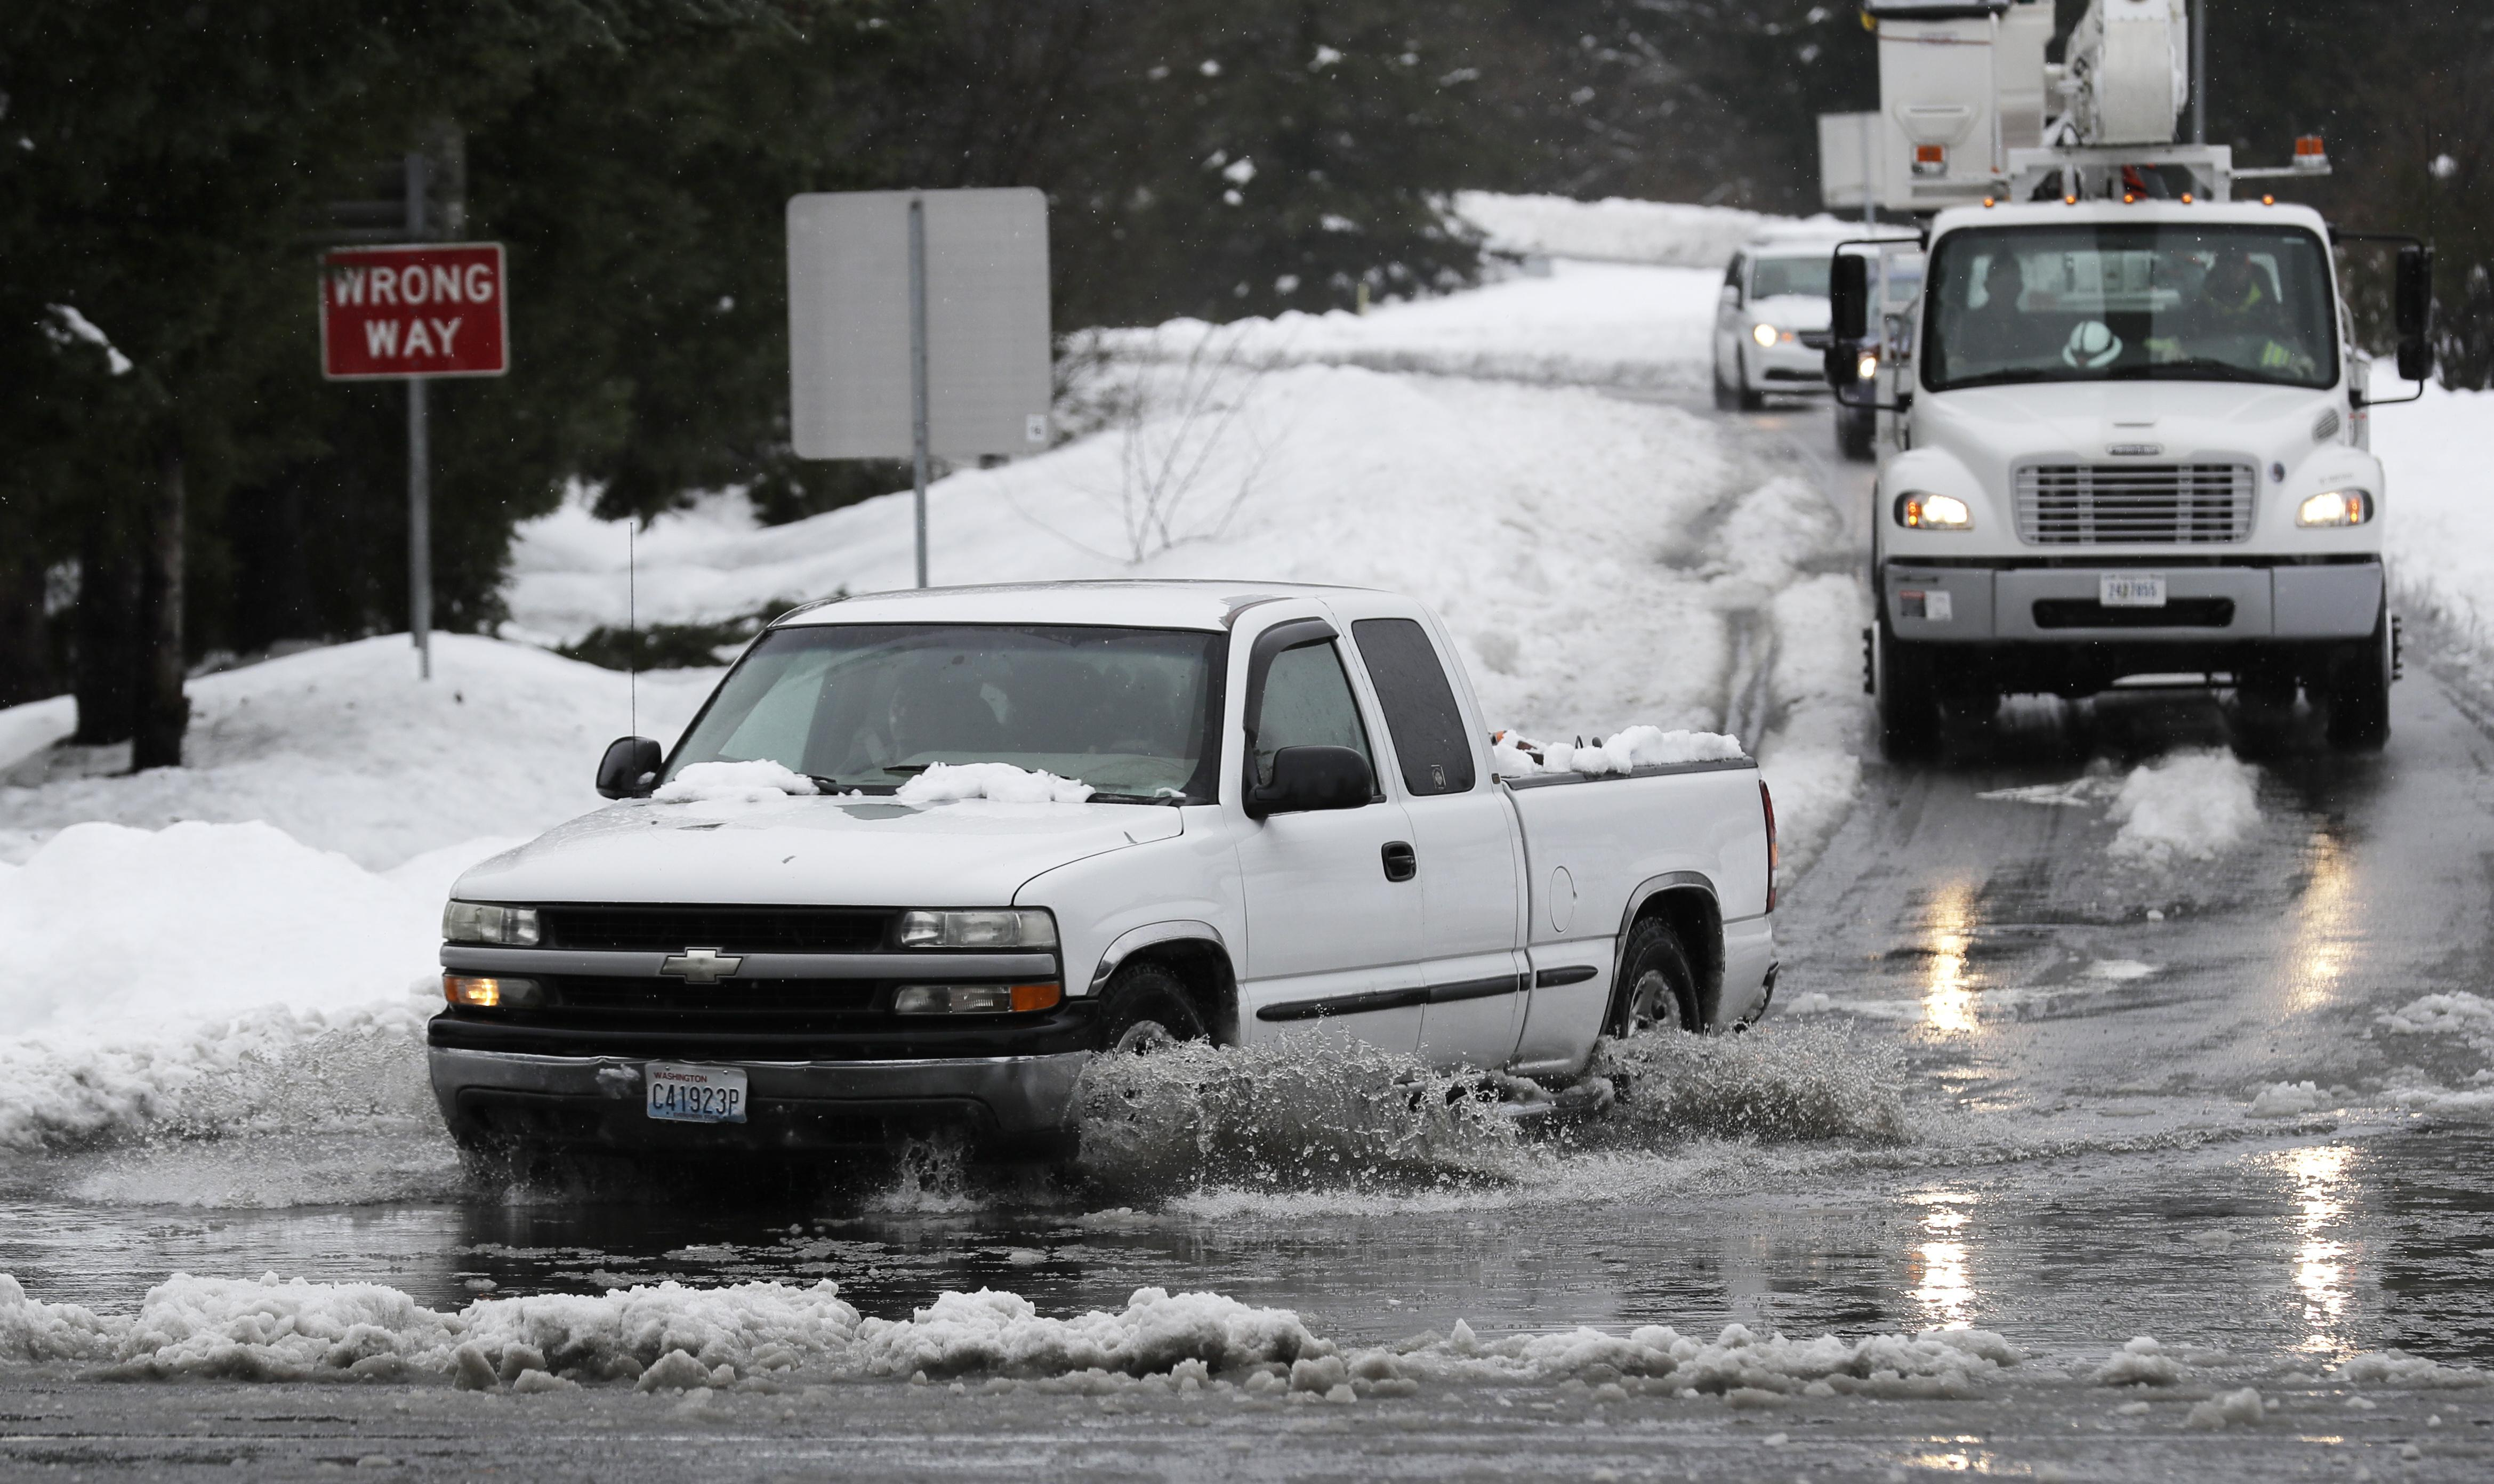 Road closures, flooding in Northwest due to rain, snow | The